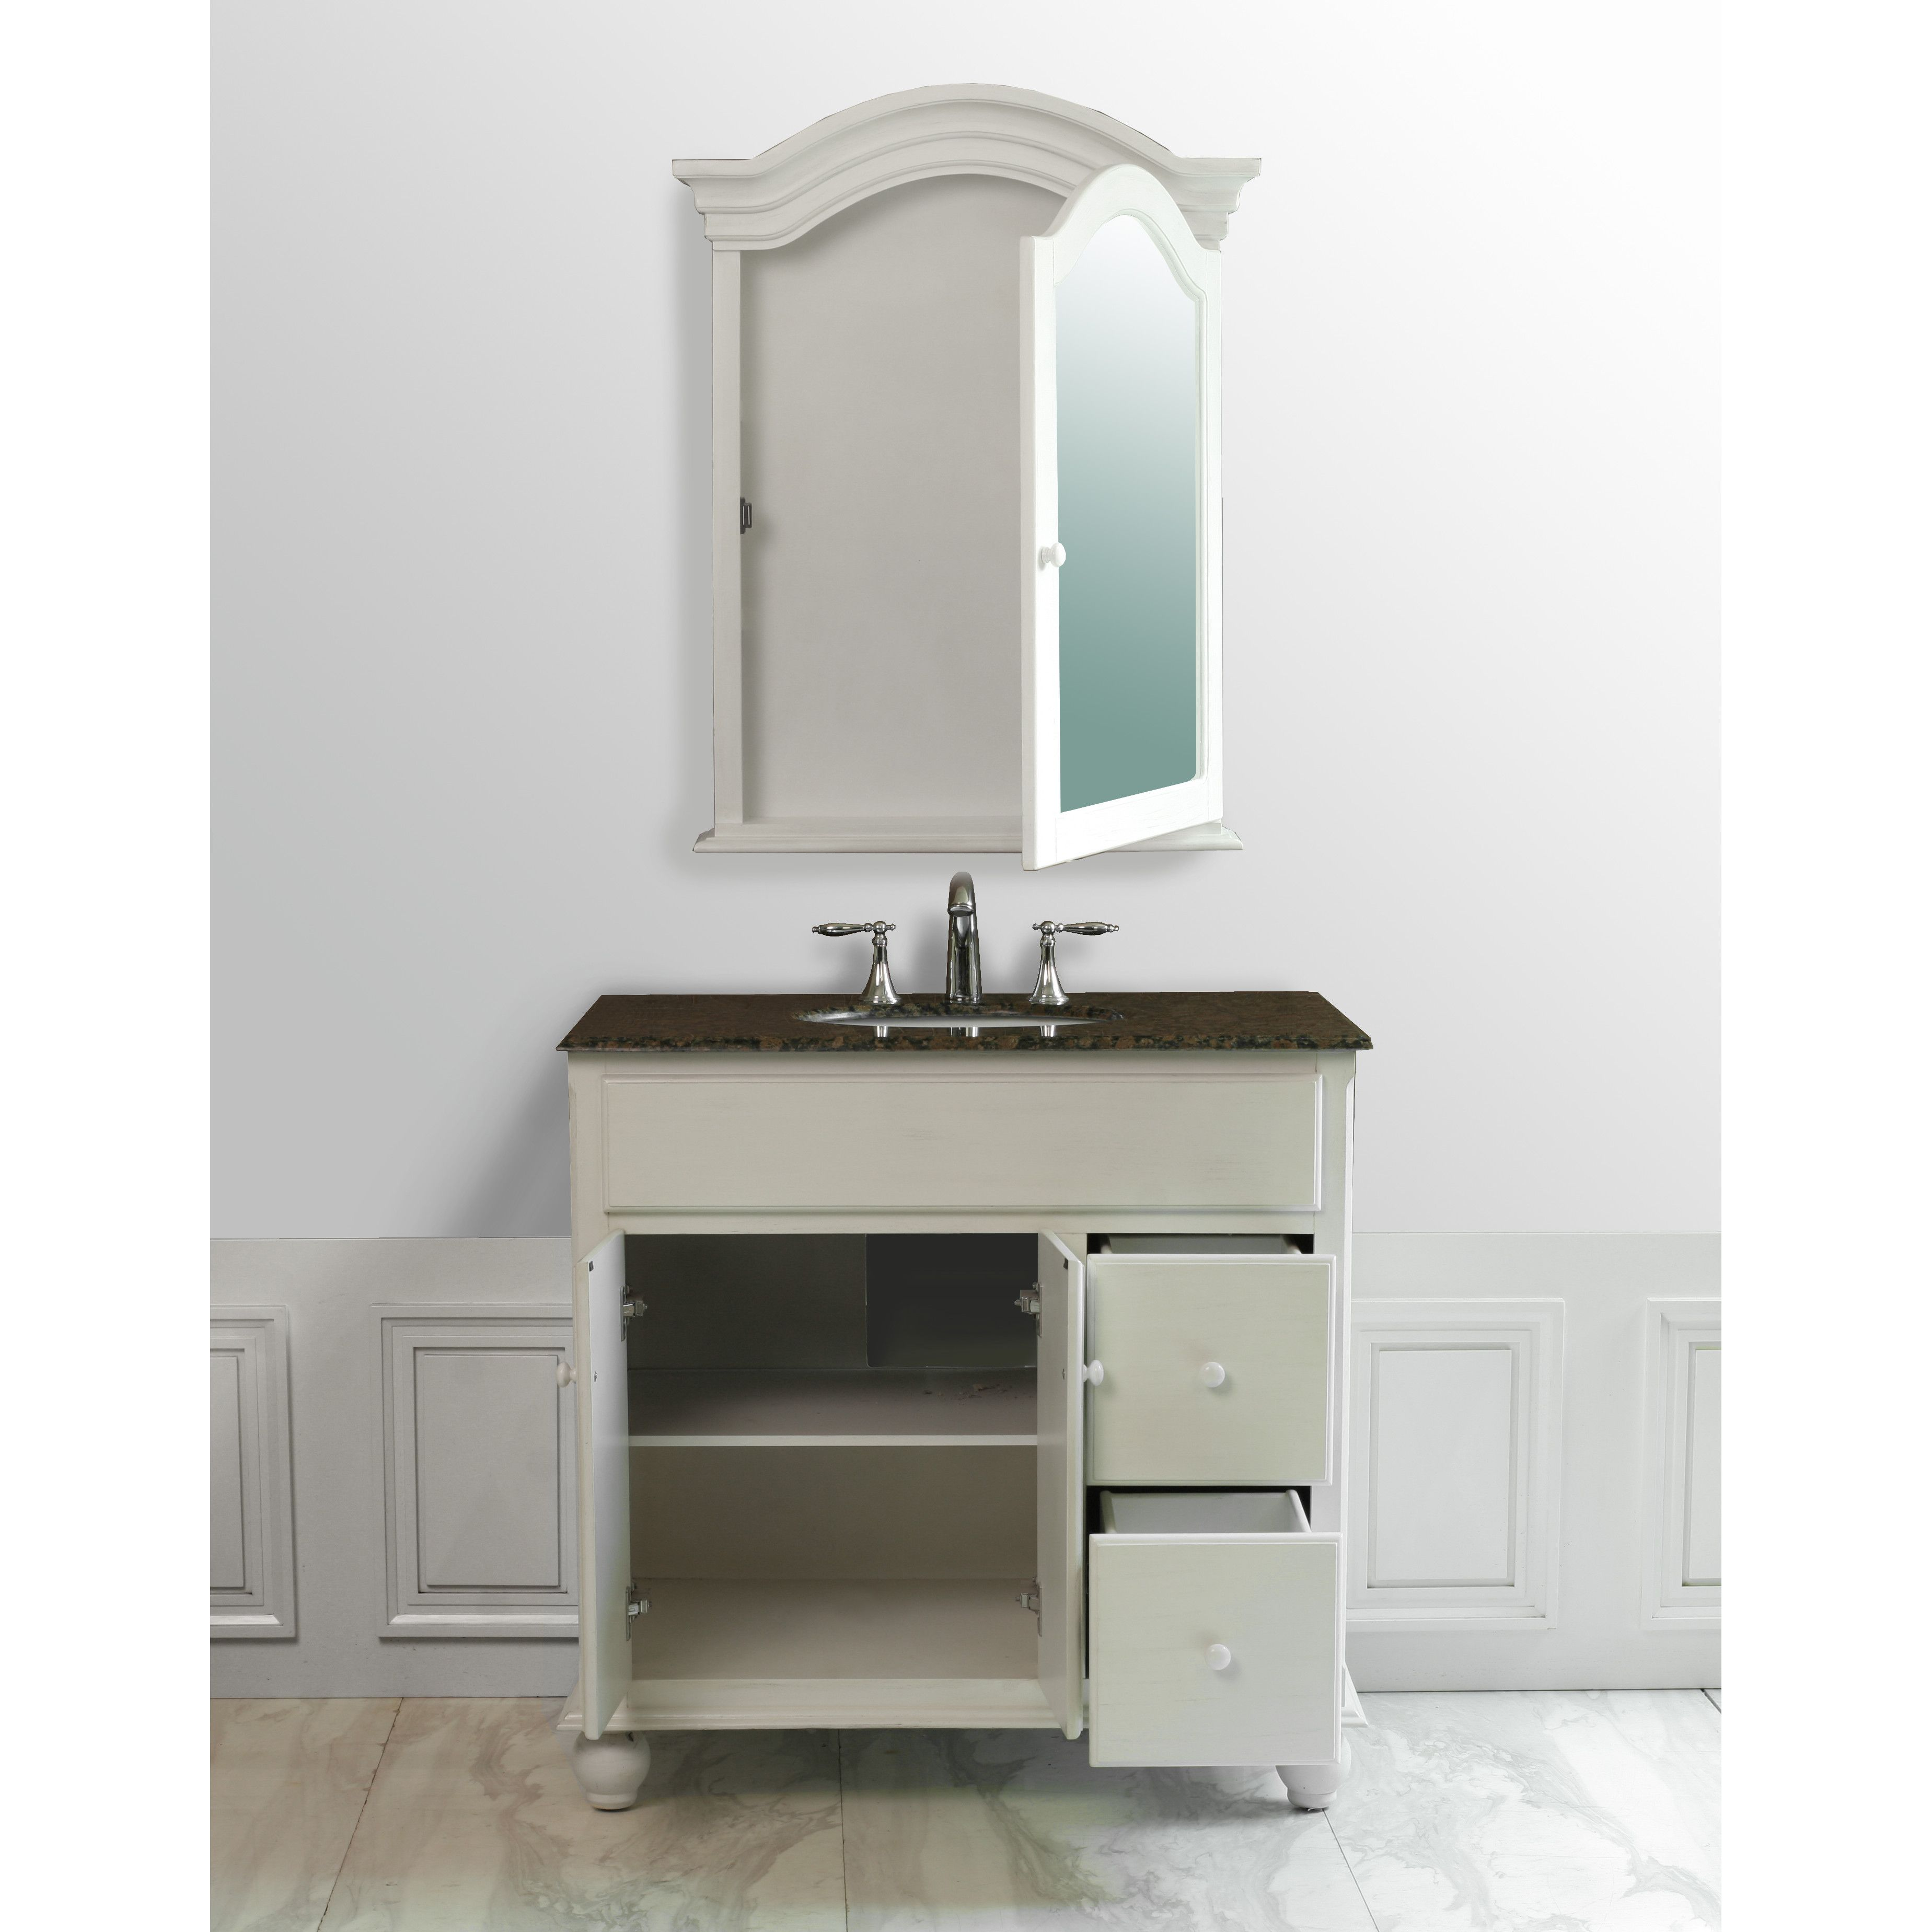 narrow bathroom vanity units. Small Bathroom Vanities And Sink You Can Crunch Into Even The Teeny